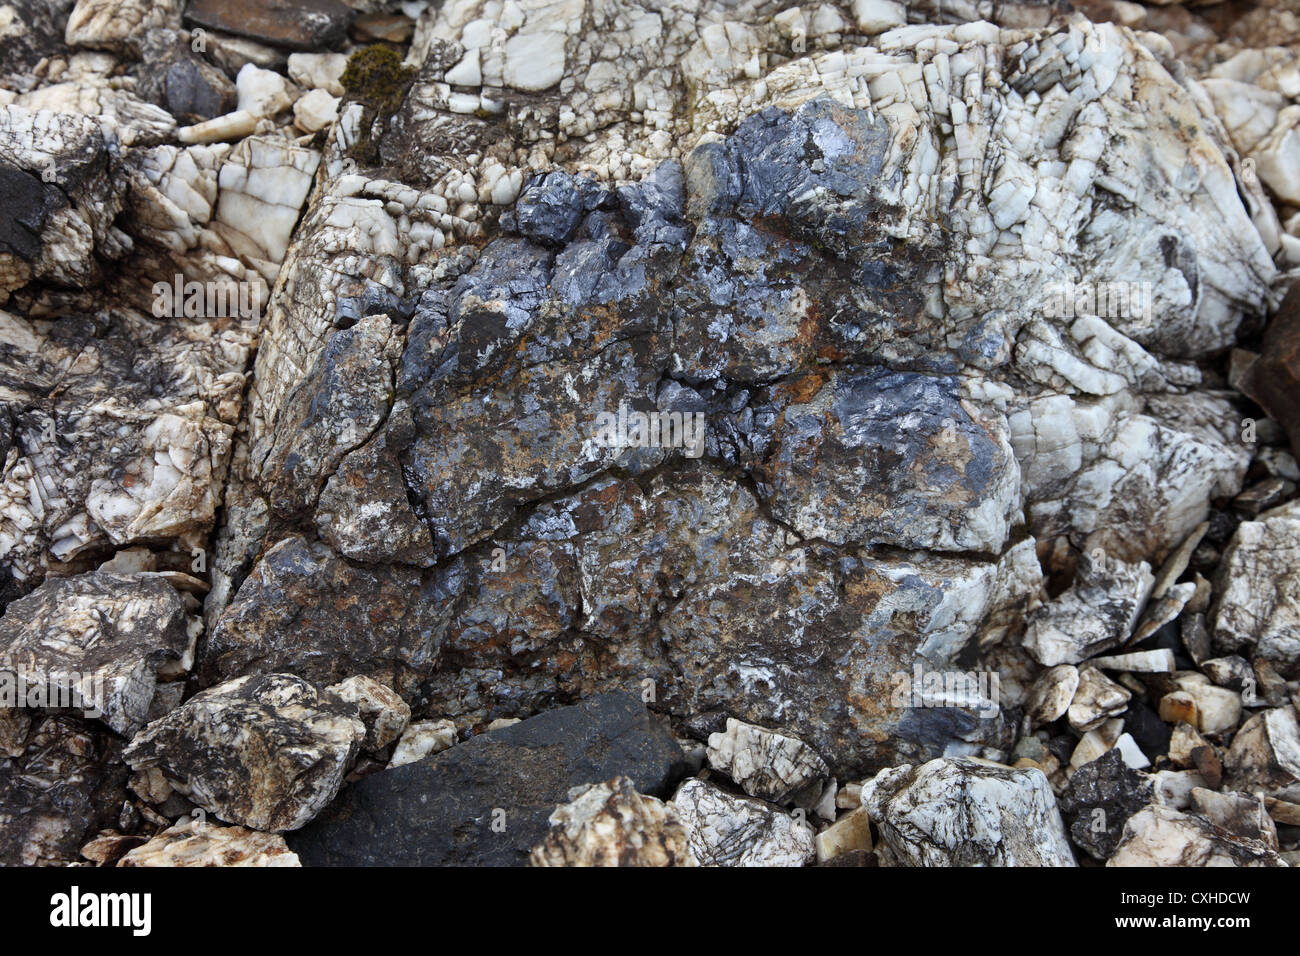 Galena (Lead Ore) Surrounded by Barytes (Barium Sulphate) Found near the Cow Green Lead Mines Teesdale County Durham - Stock Image